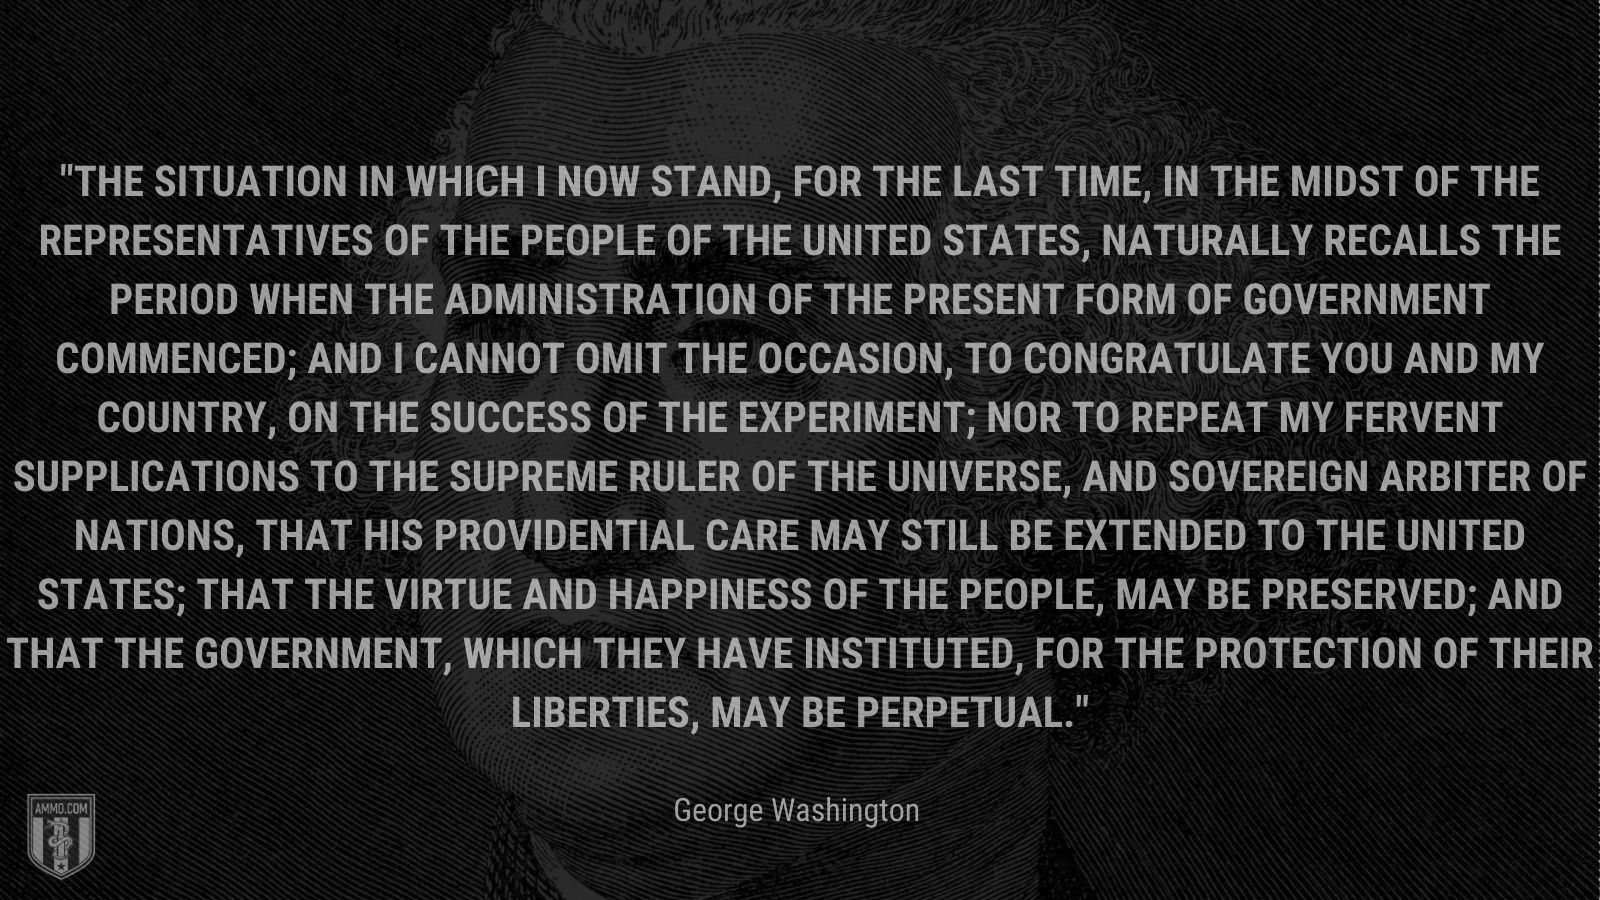 """""""The situation in which I now stand, for the last time, in the midst of the Representatives of the People of the United States, naturally recalls the period when the Administration of the present form of Government commenced; and I cannot omit the occasion, to congratulate you and my Country, on the success of the experiment; nor to repeat my fervent supplications to the Supreme Ruler of the Universe, and Sovereign Arbiter of Nations, that his Providential care may still be extended to the United States; that the virtue and happiness of the People, may be preserved; and that the Government, which they have instituted, for the protection of their liberties, may be perpetual."""" - George Washington"""